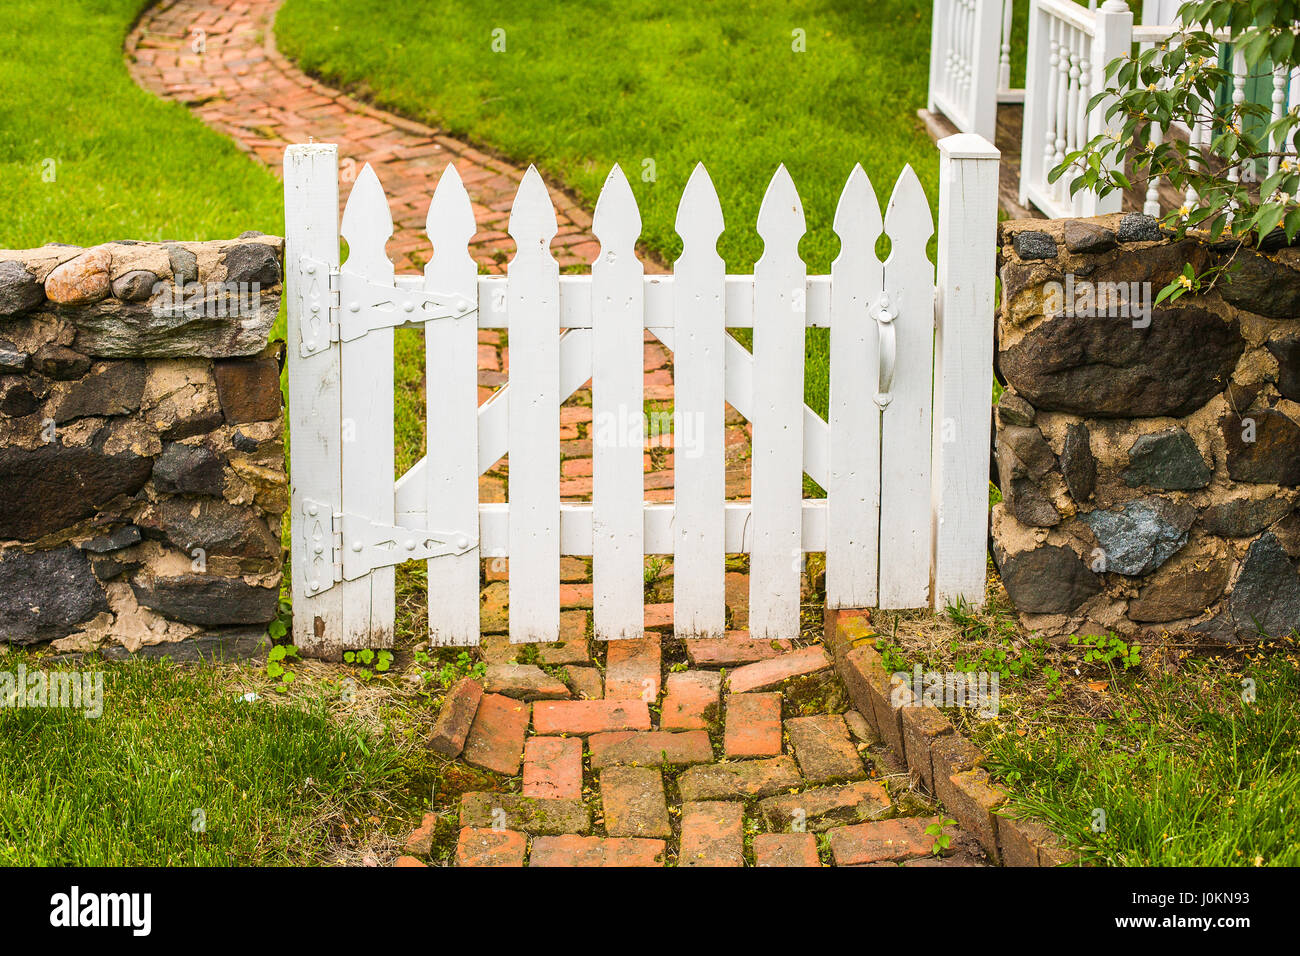 A White Wooden Picket Gate In A Low Stone Wall Across A